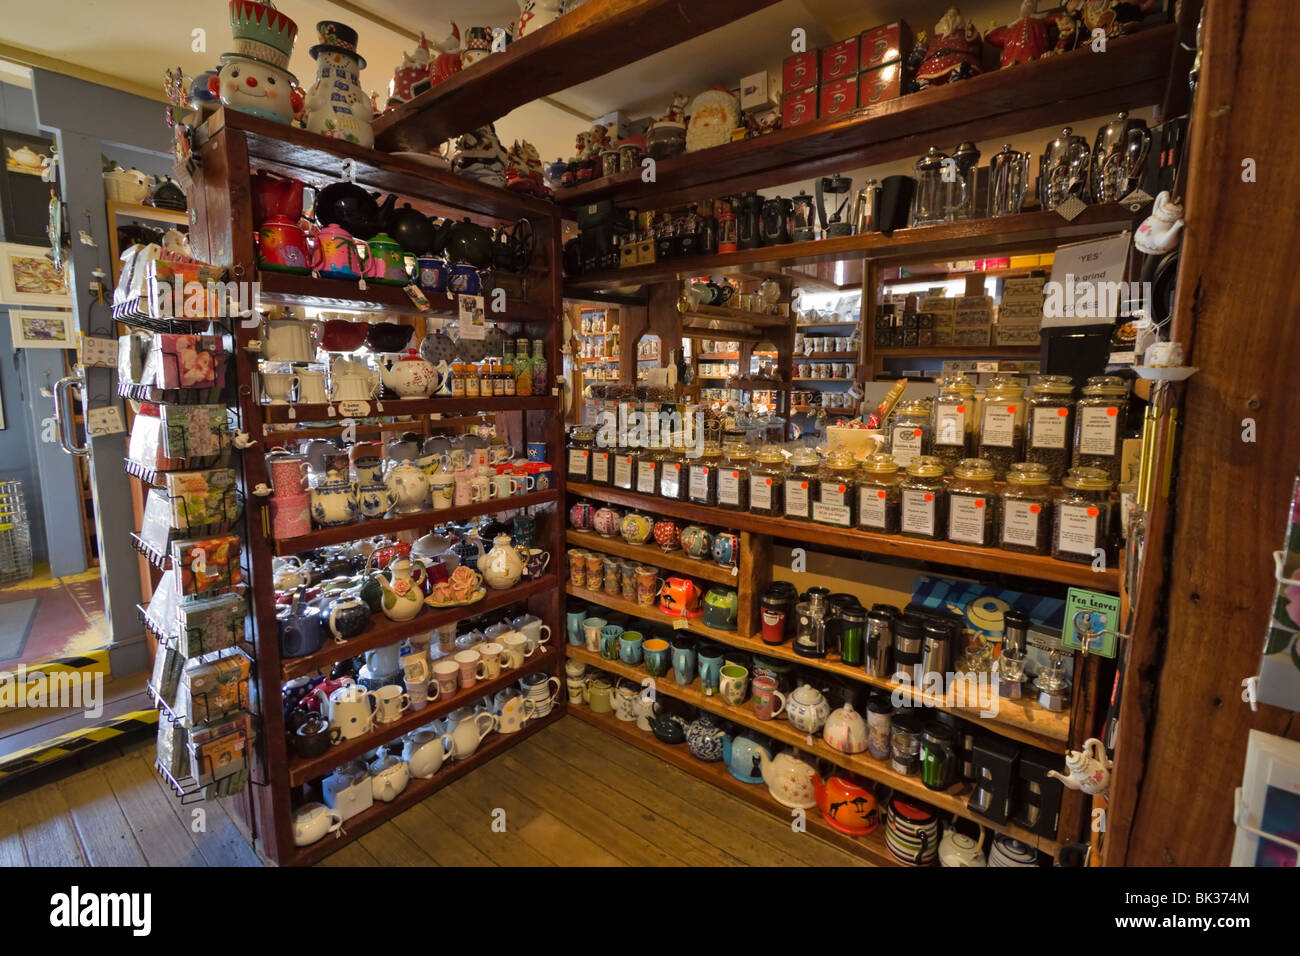 Interior of Tea Leaves, a boutique selling teas and teapots in Sassafras, Victoria, Australia - Stock Image